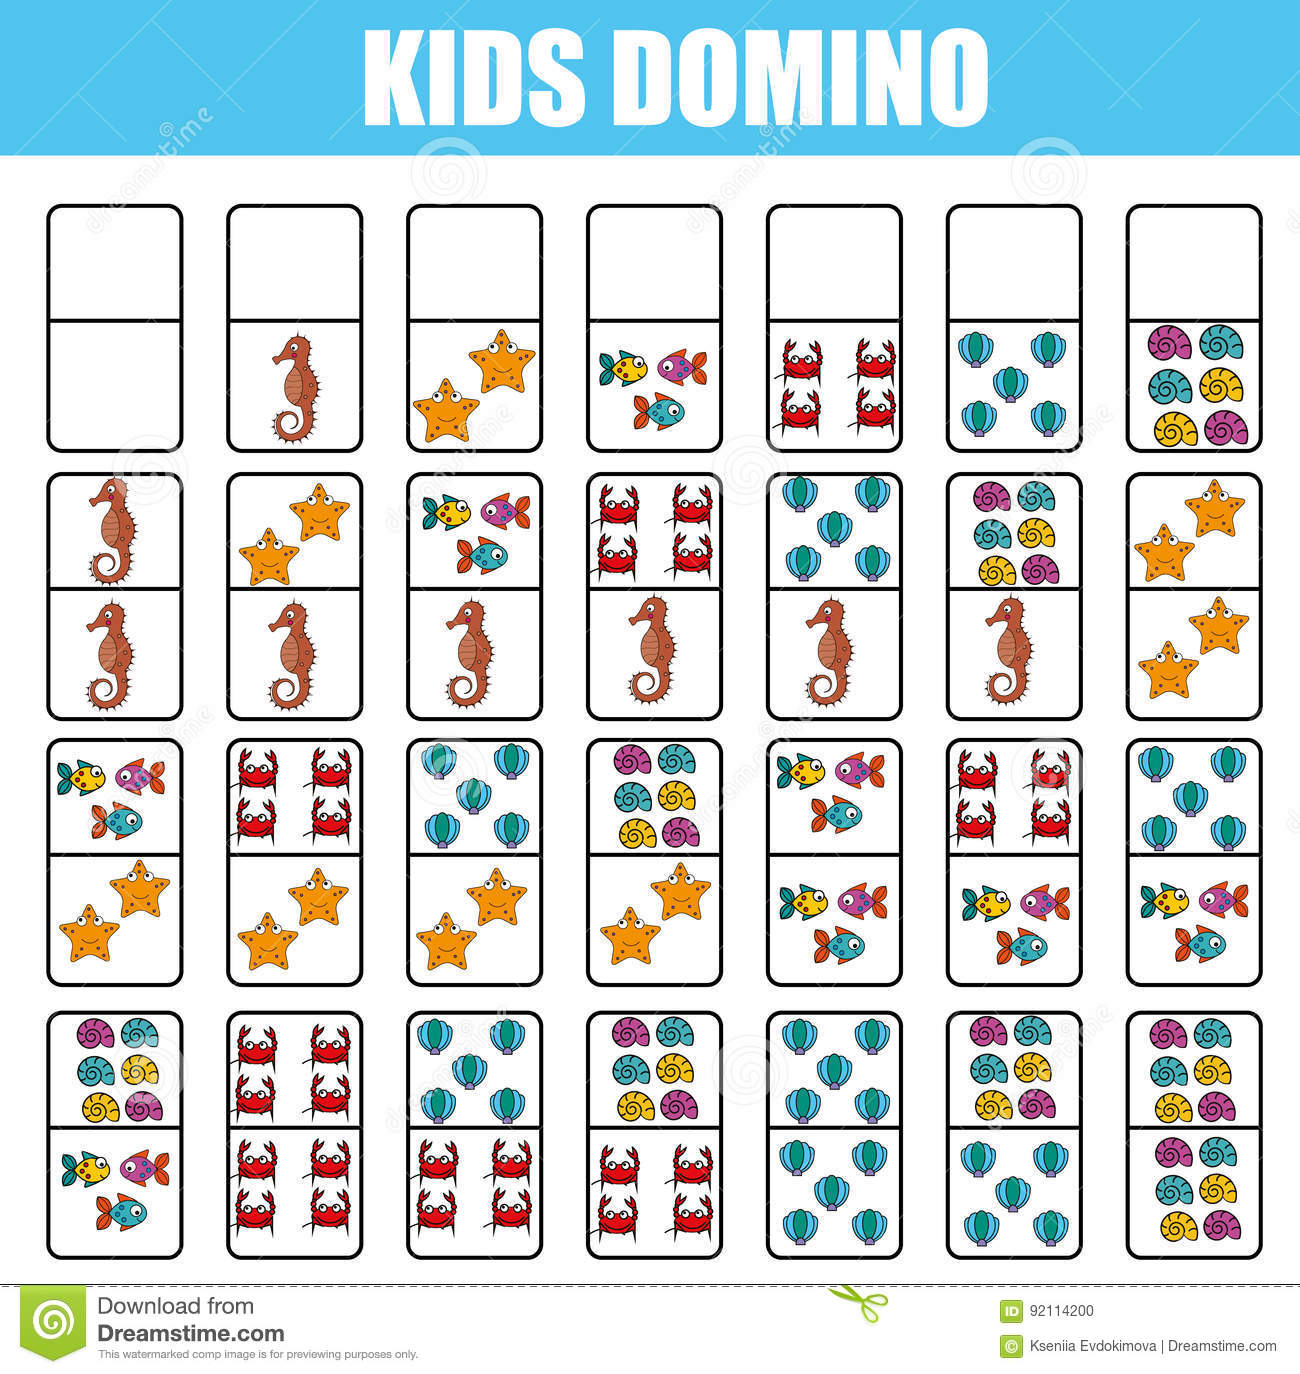 Domino For Kids Children Educational Game Printable Activity Board Game Stock Vector